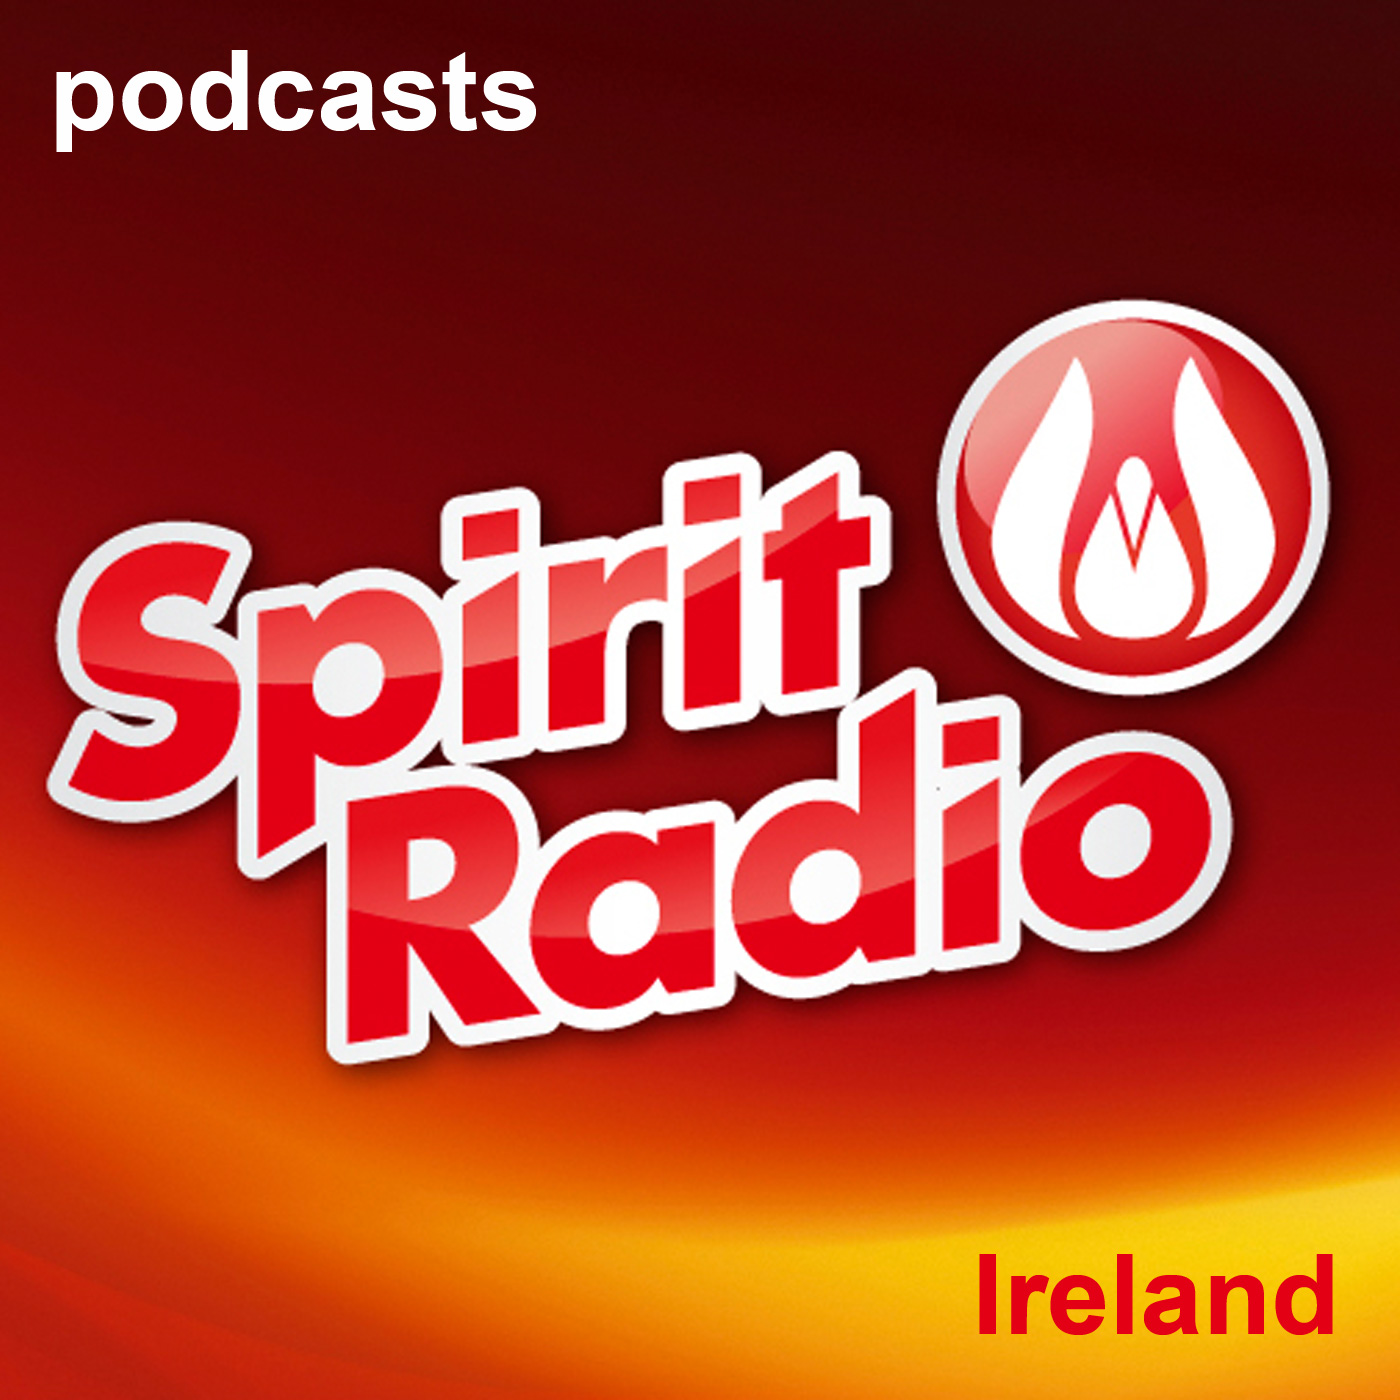 03.07.2015: Cora Sherlock – Abortion and the Risk of Suicide on Spirit radio.